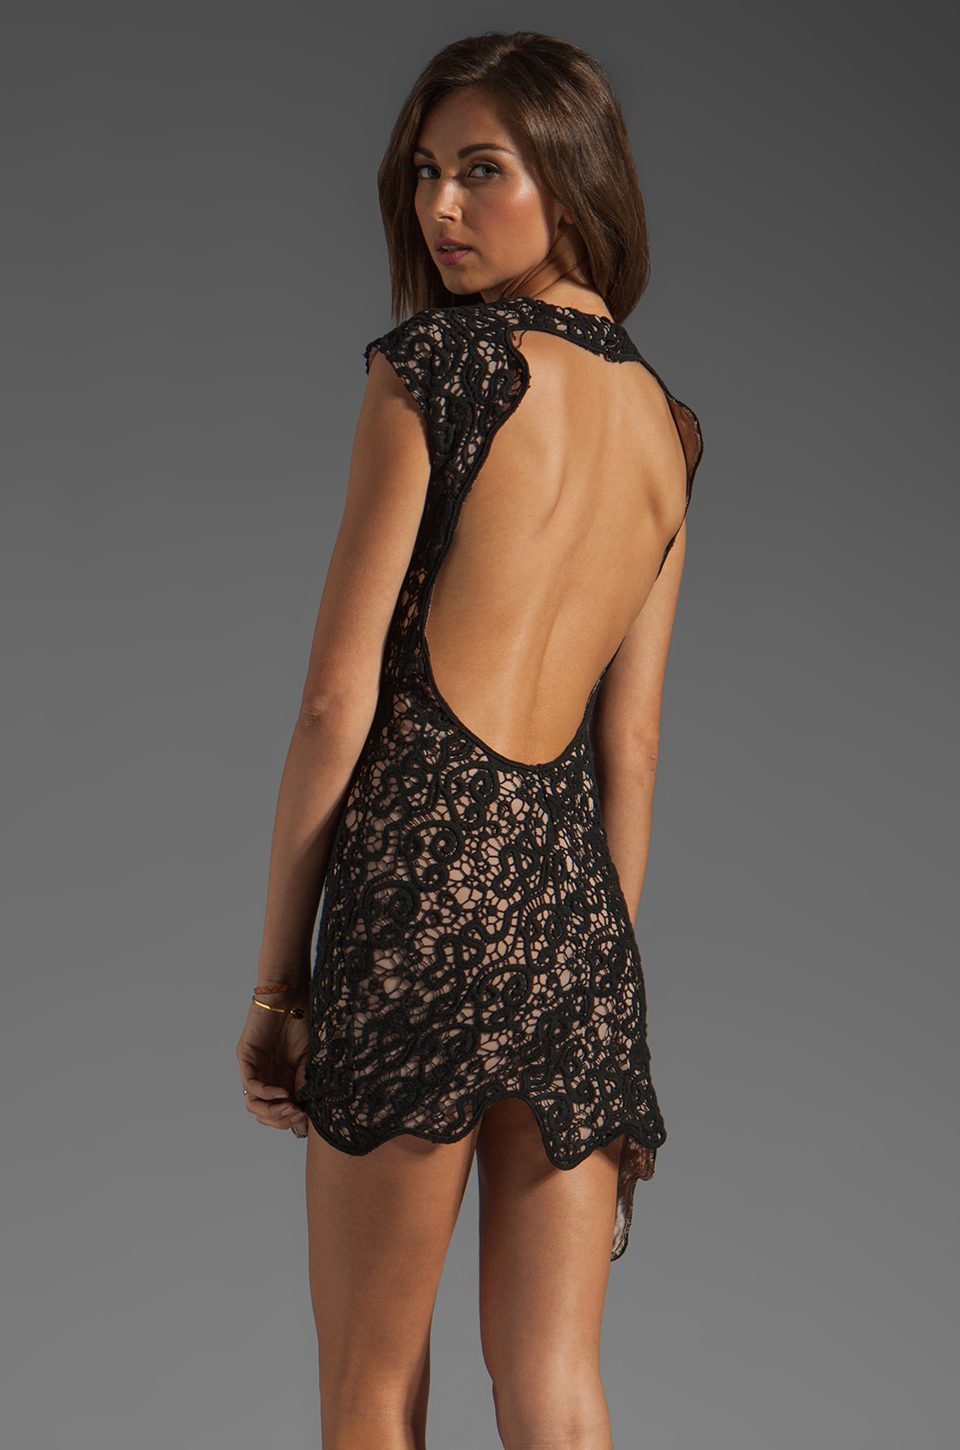 bless'ed are the meek Siren Queen Dress in Black